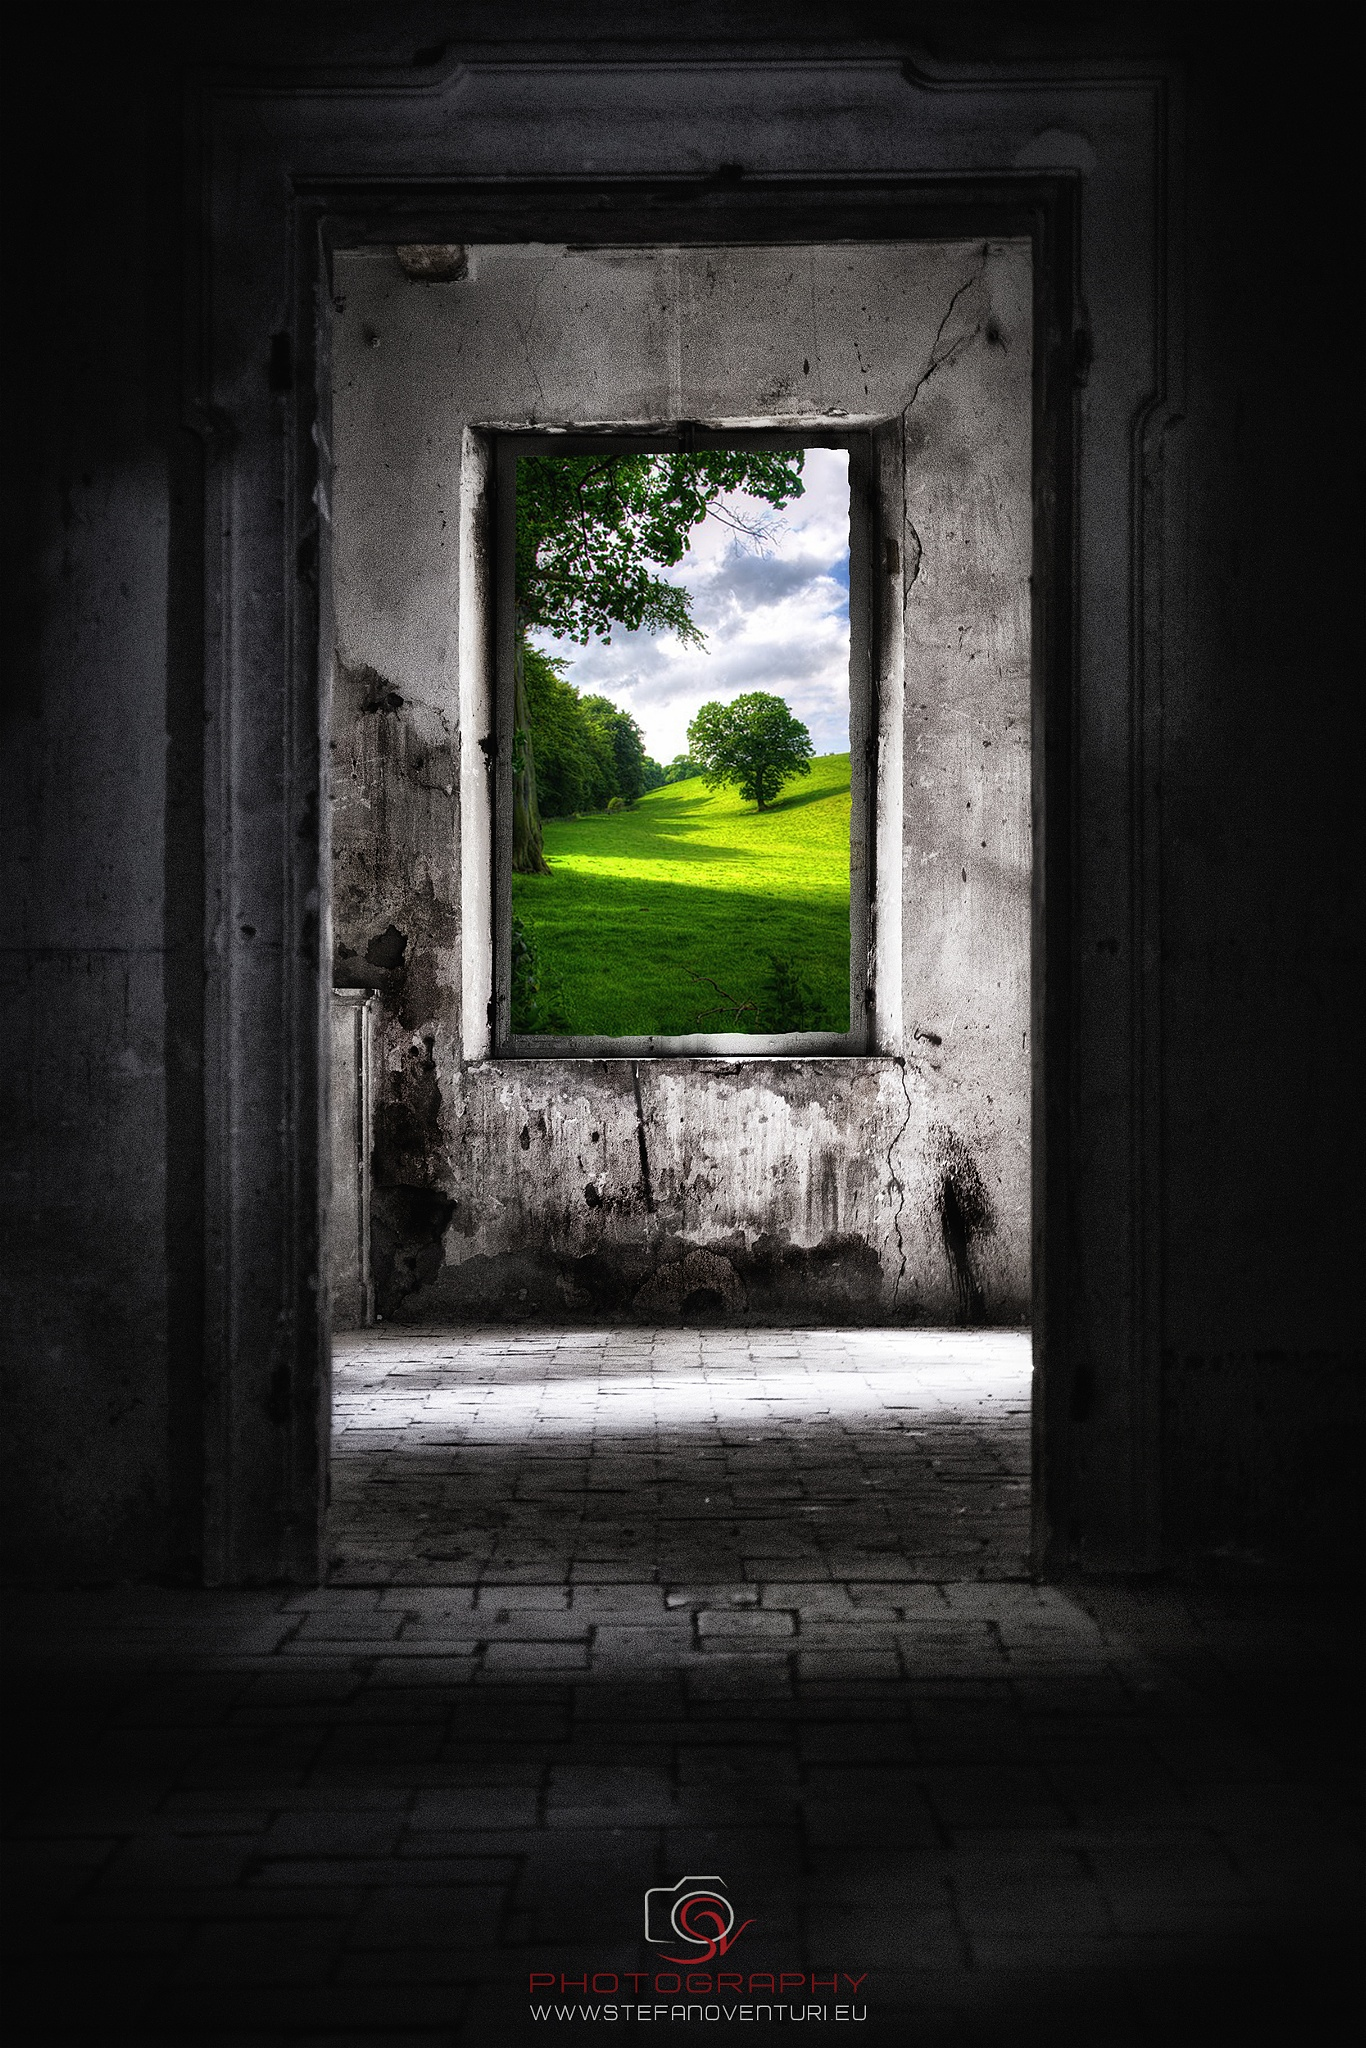 Life beyond walls by steve_photography